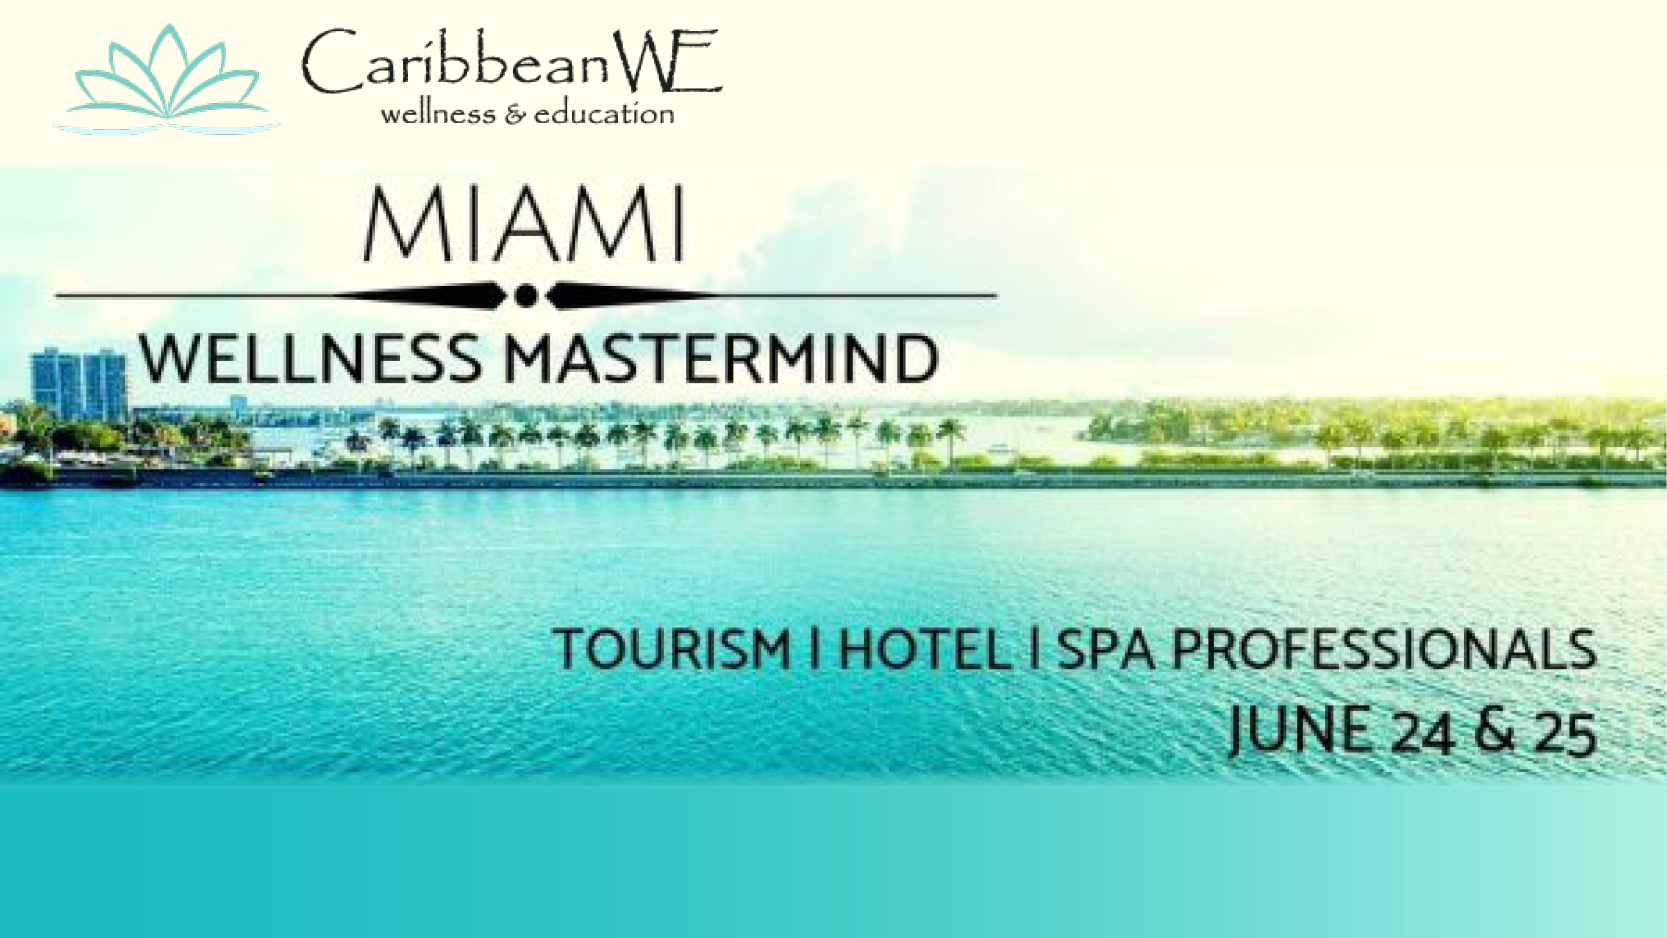 """""""Purposeful Design: The Prerequisite for Wellness"""" - Speaker: EcoChi President & Founder Debra Duneier. Monday June 24th, 2019 at 1:00pm-1:30pm- At Hyatt Regency Miami - Caribbean WE in partnership with SpaHive, presents a high-profile panel of wellness speakers discussing how to capture the high-yield 'Wellness Traveler'."""